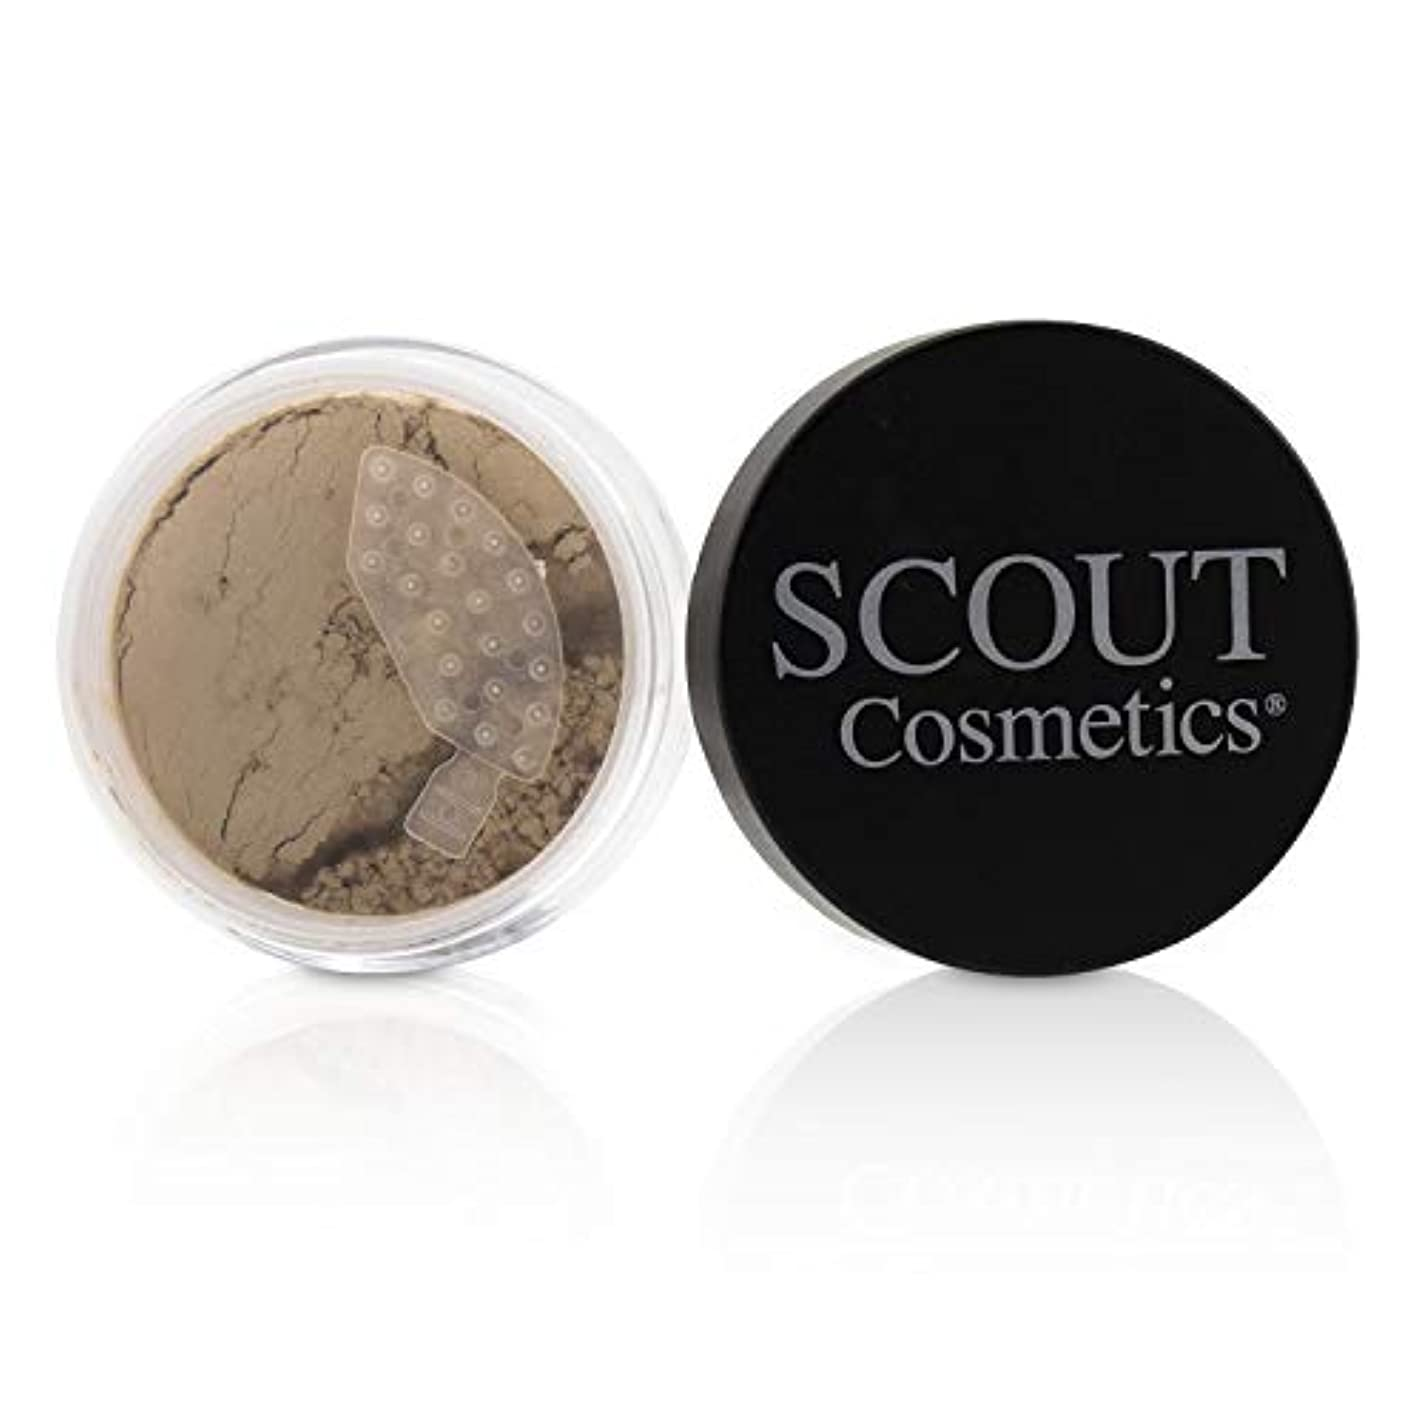 ひねり攻撃的単にSCOUT Cosmetics Mineral Powder Foundation SPF 20 - # Porcelain 8g/0.28oz並行輸入品